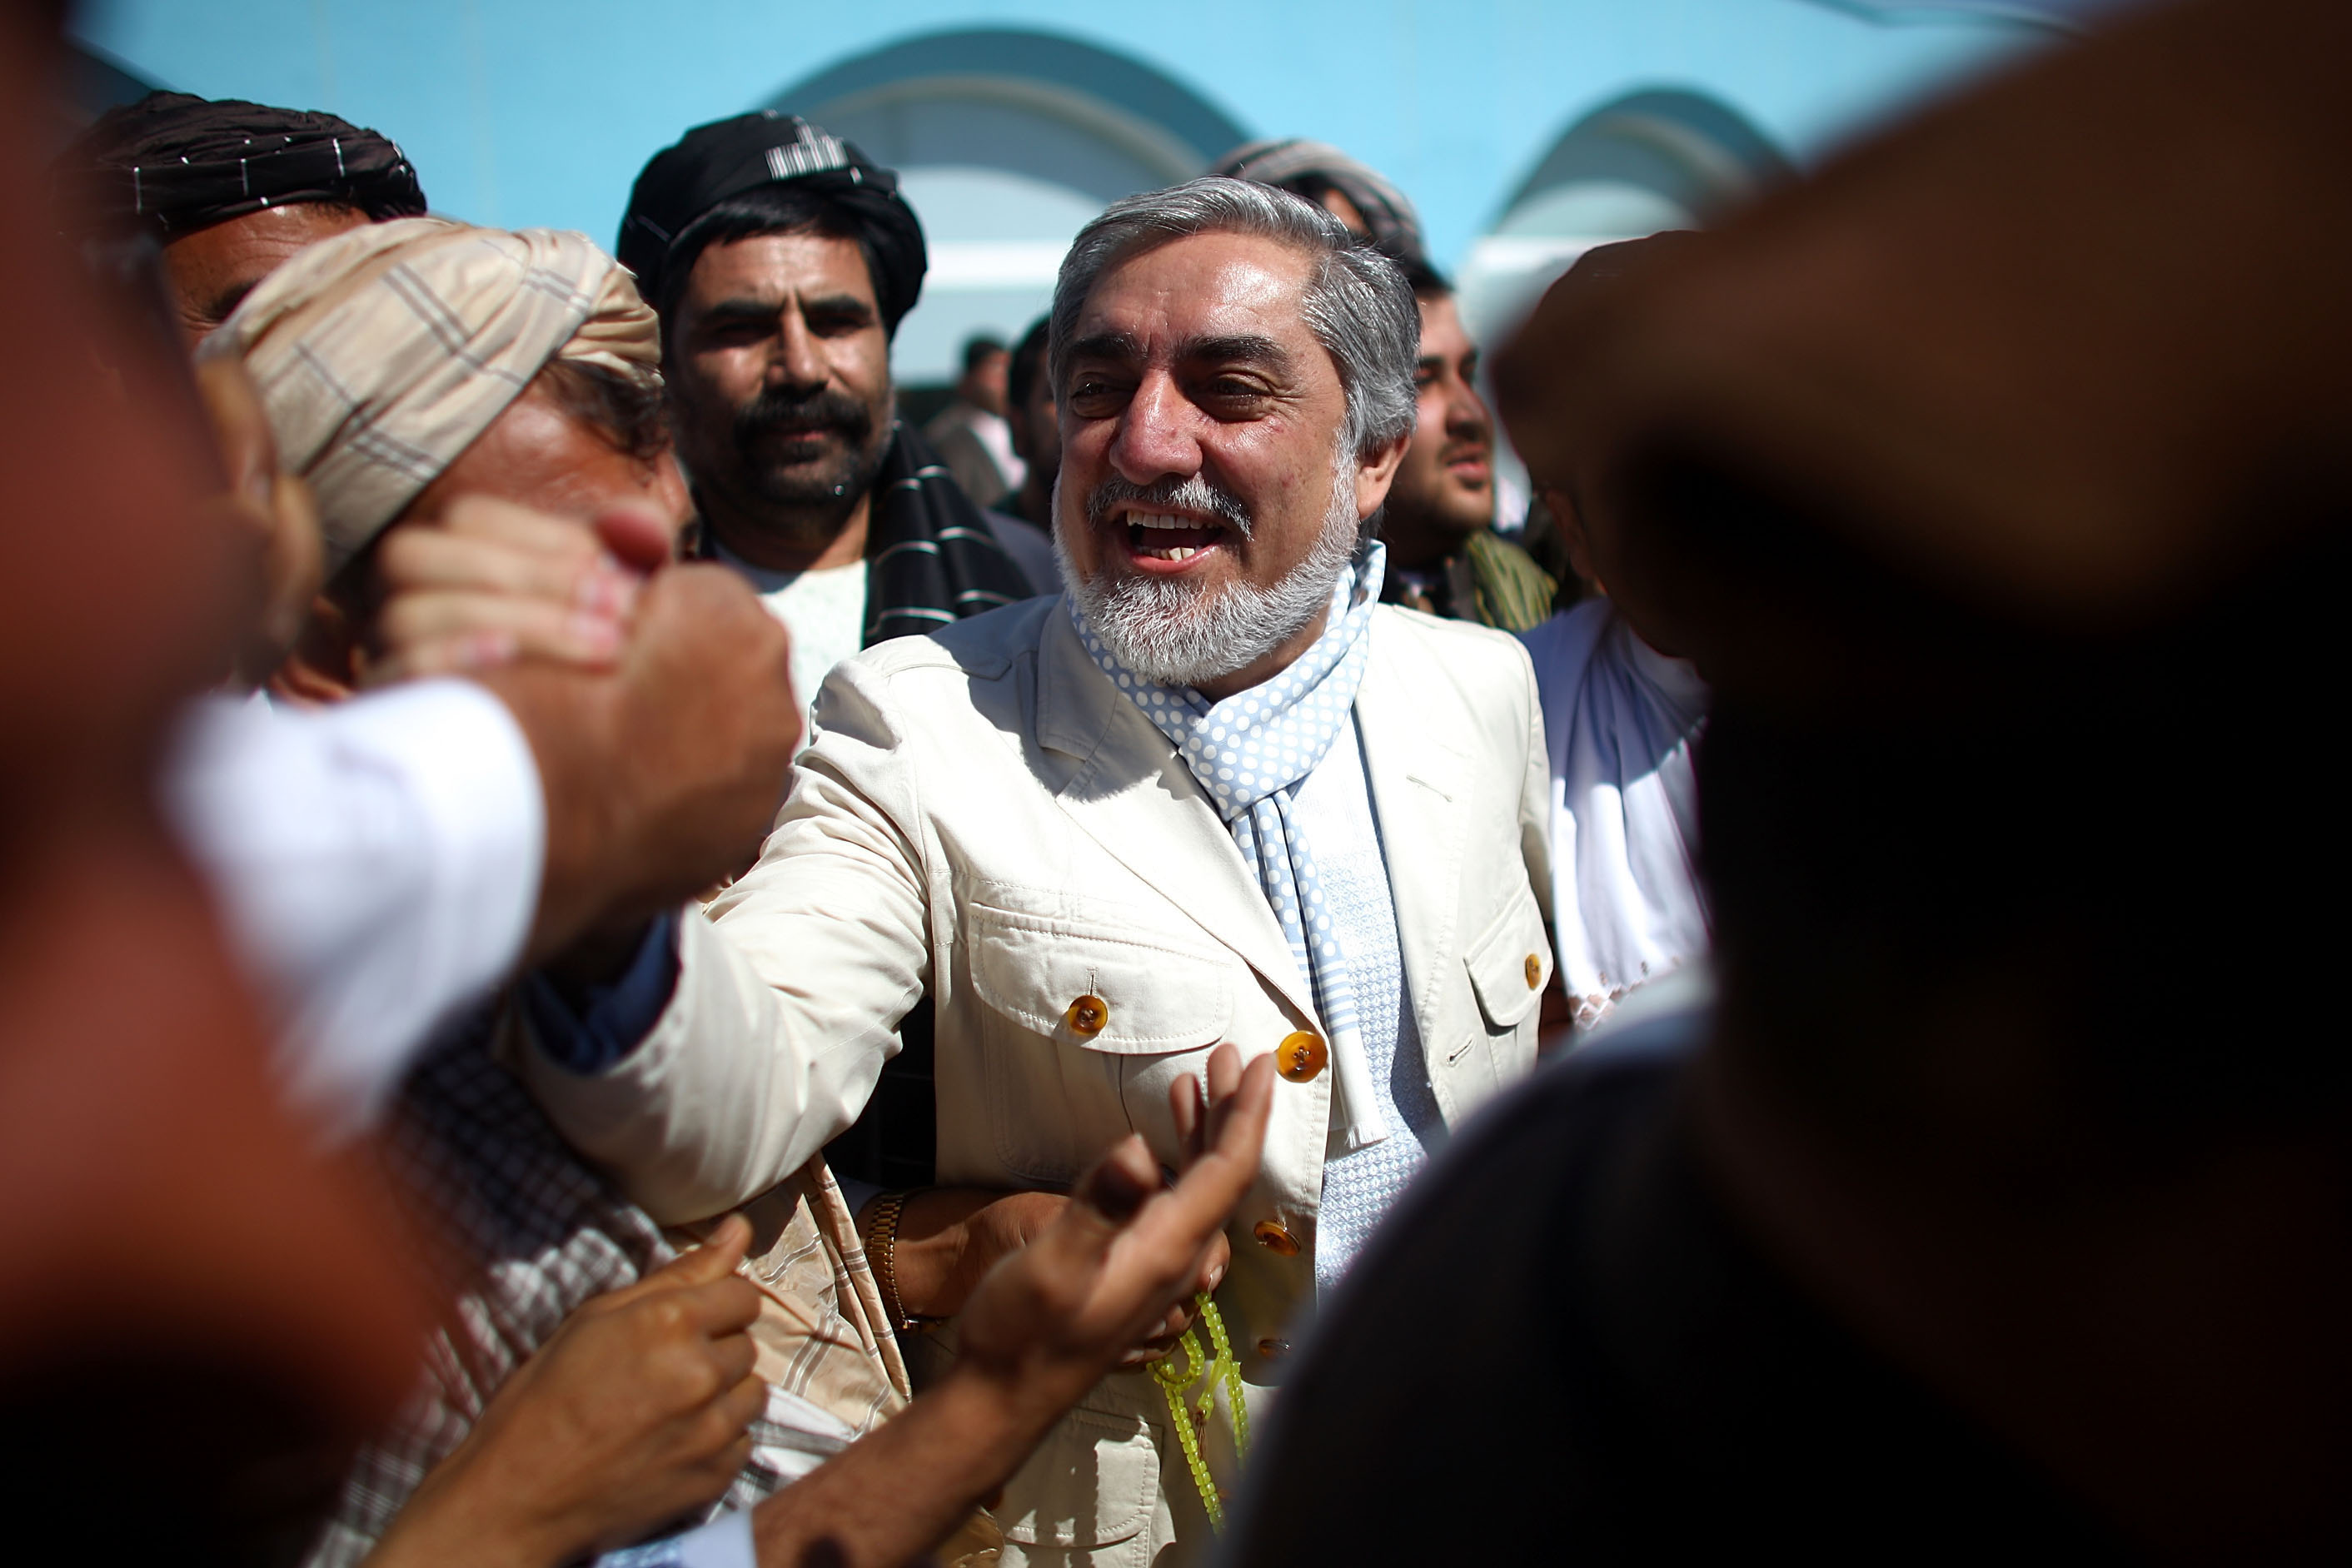 Presidential candidate Dr. Abdullah Abdullah is greeted by well-wishers and local officials at Kandahar International Airport. He held a rally in the southern city in an effort to improve his standing among Pashtuns, who dominate the region.